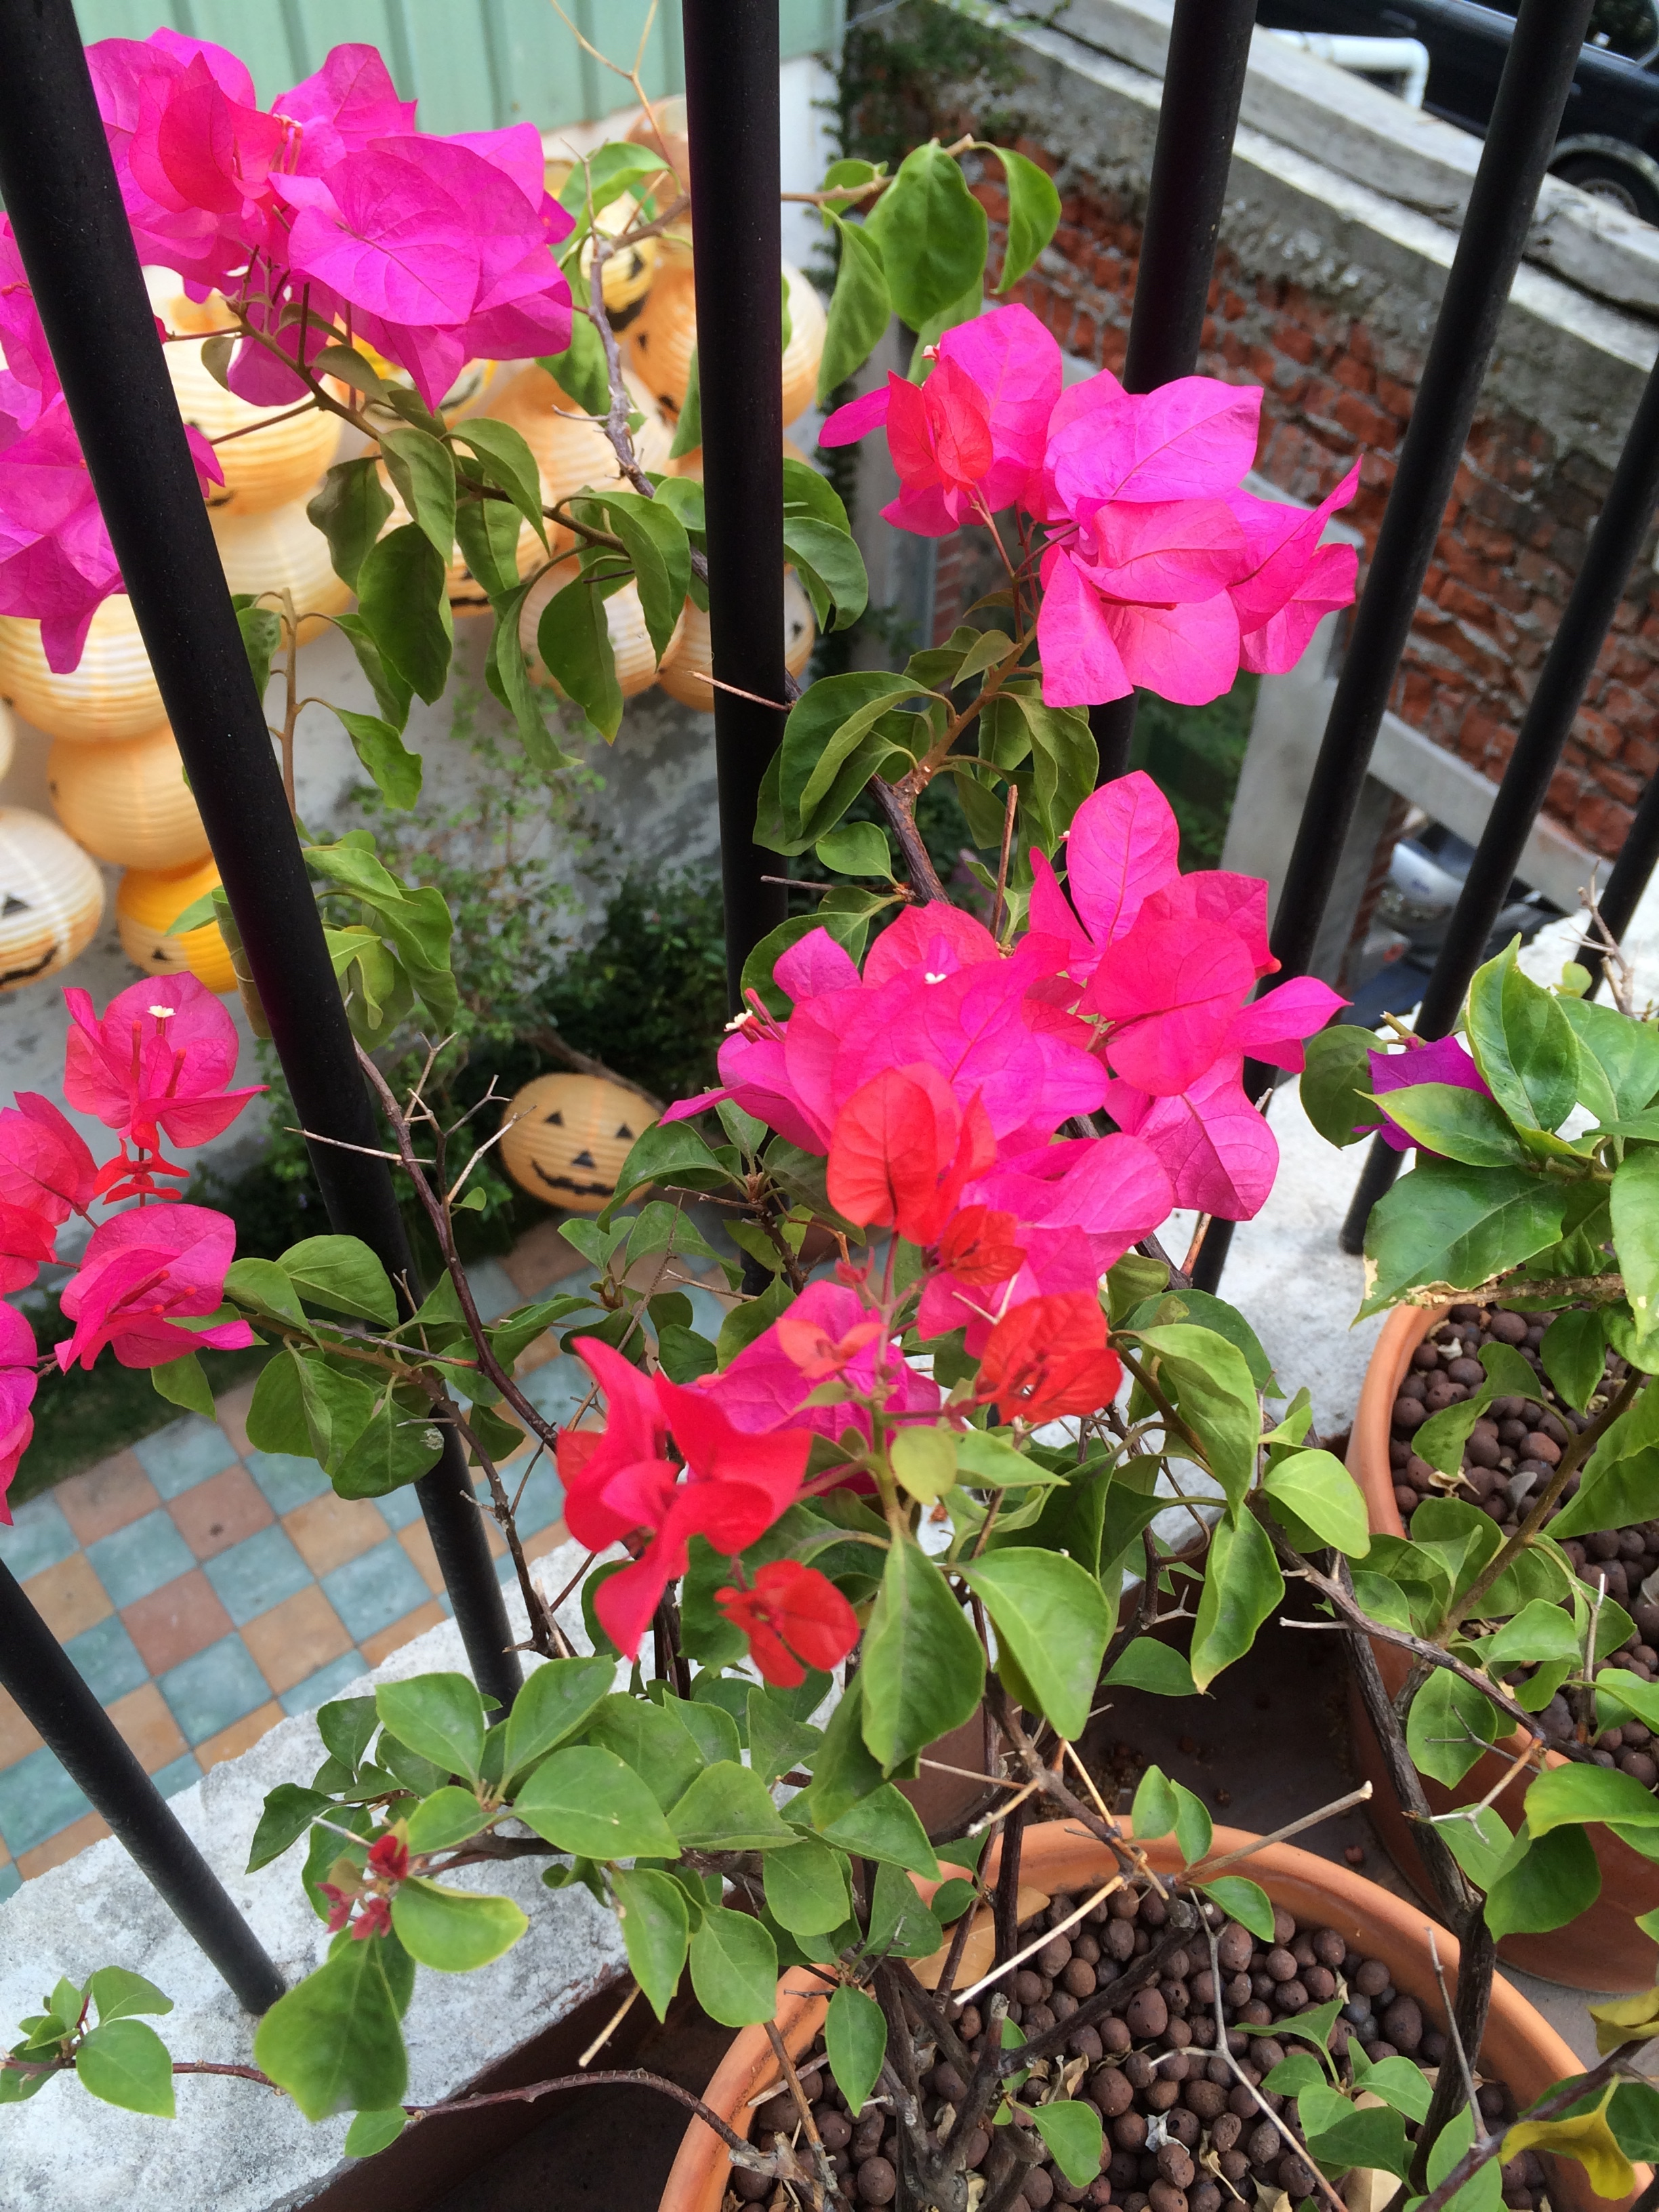 fantasy story featured blooming bougainvillea too, like everywhere else in taichung. how have i never noticed these flowers before?!